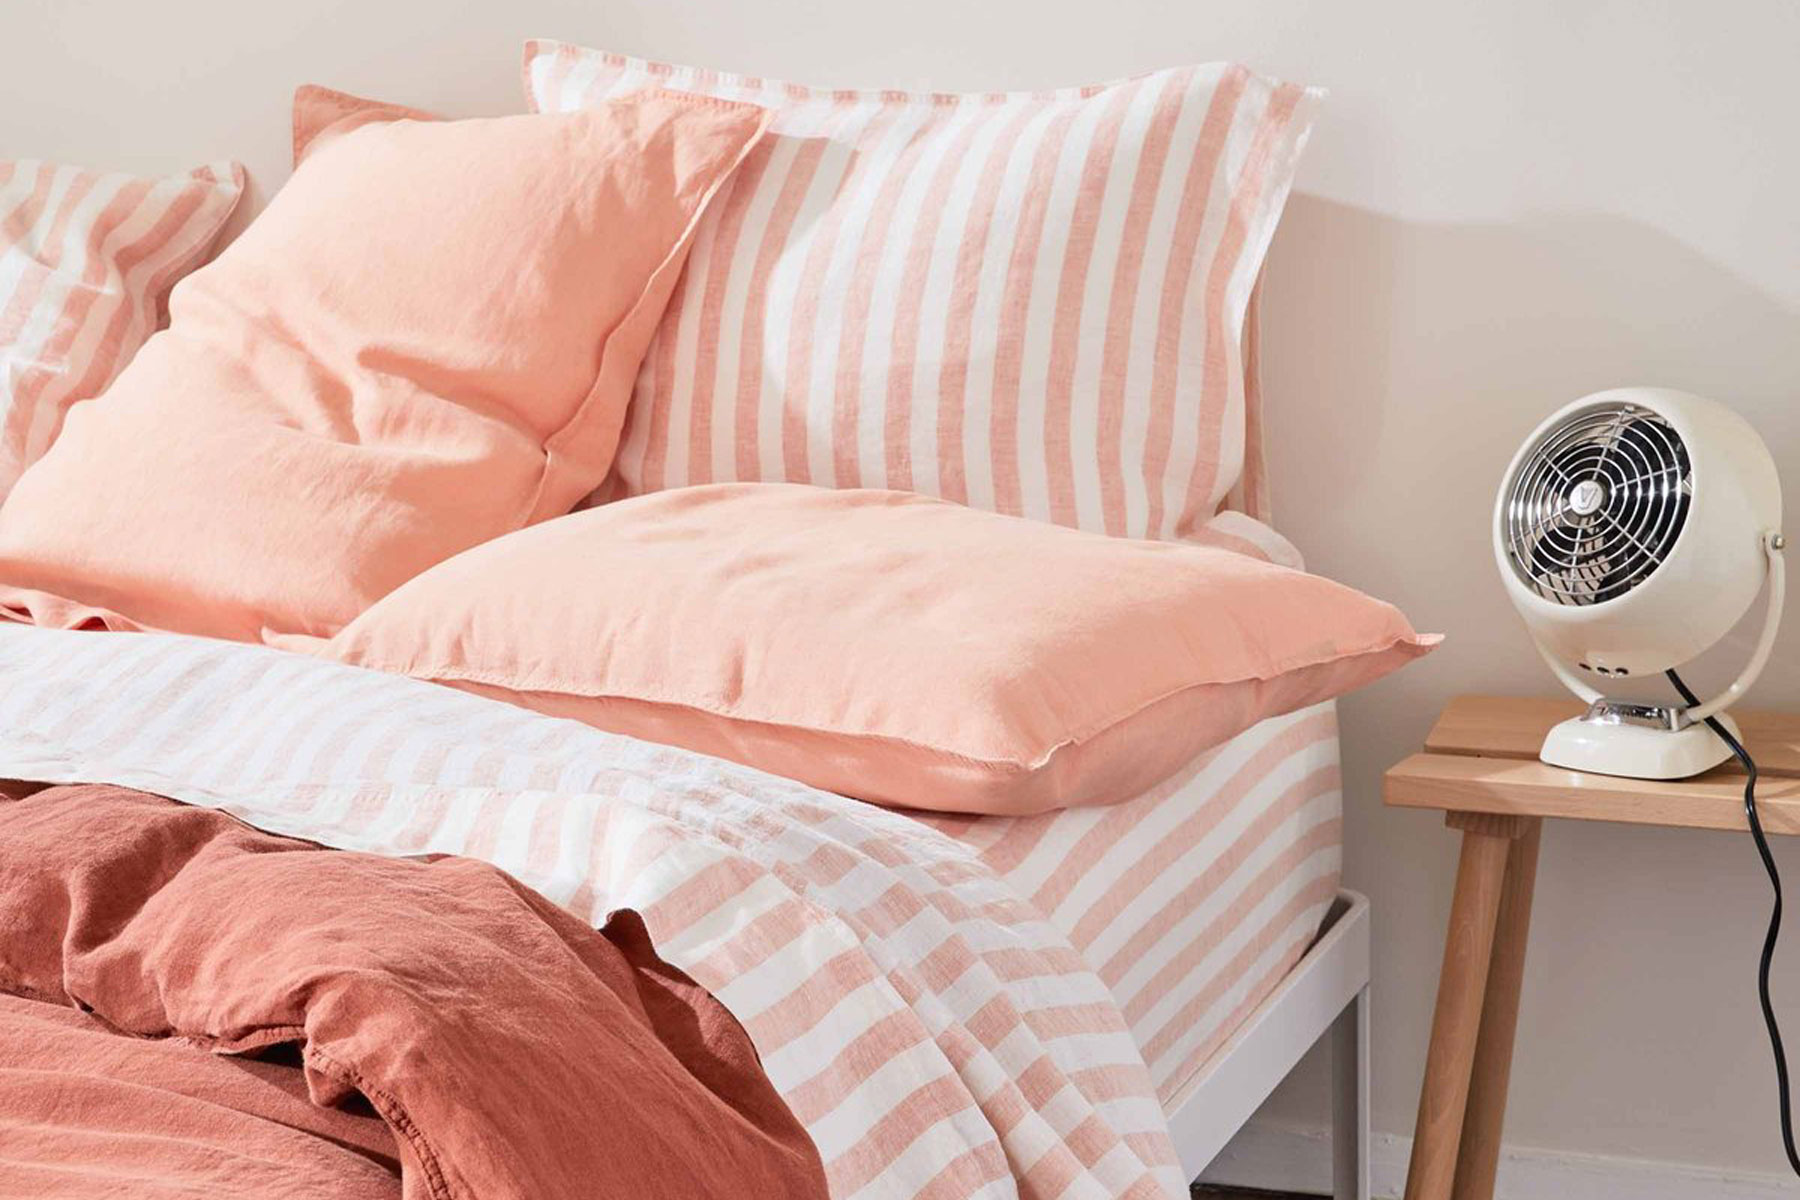 Orange striped linen sheets on bed